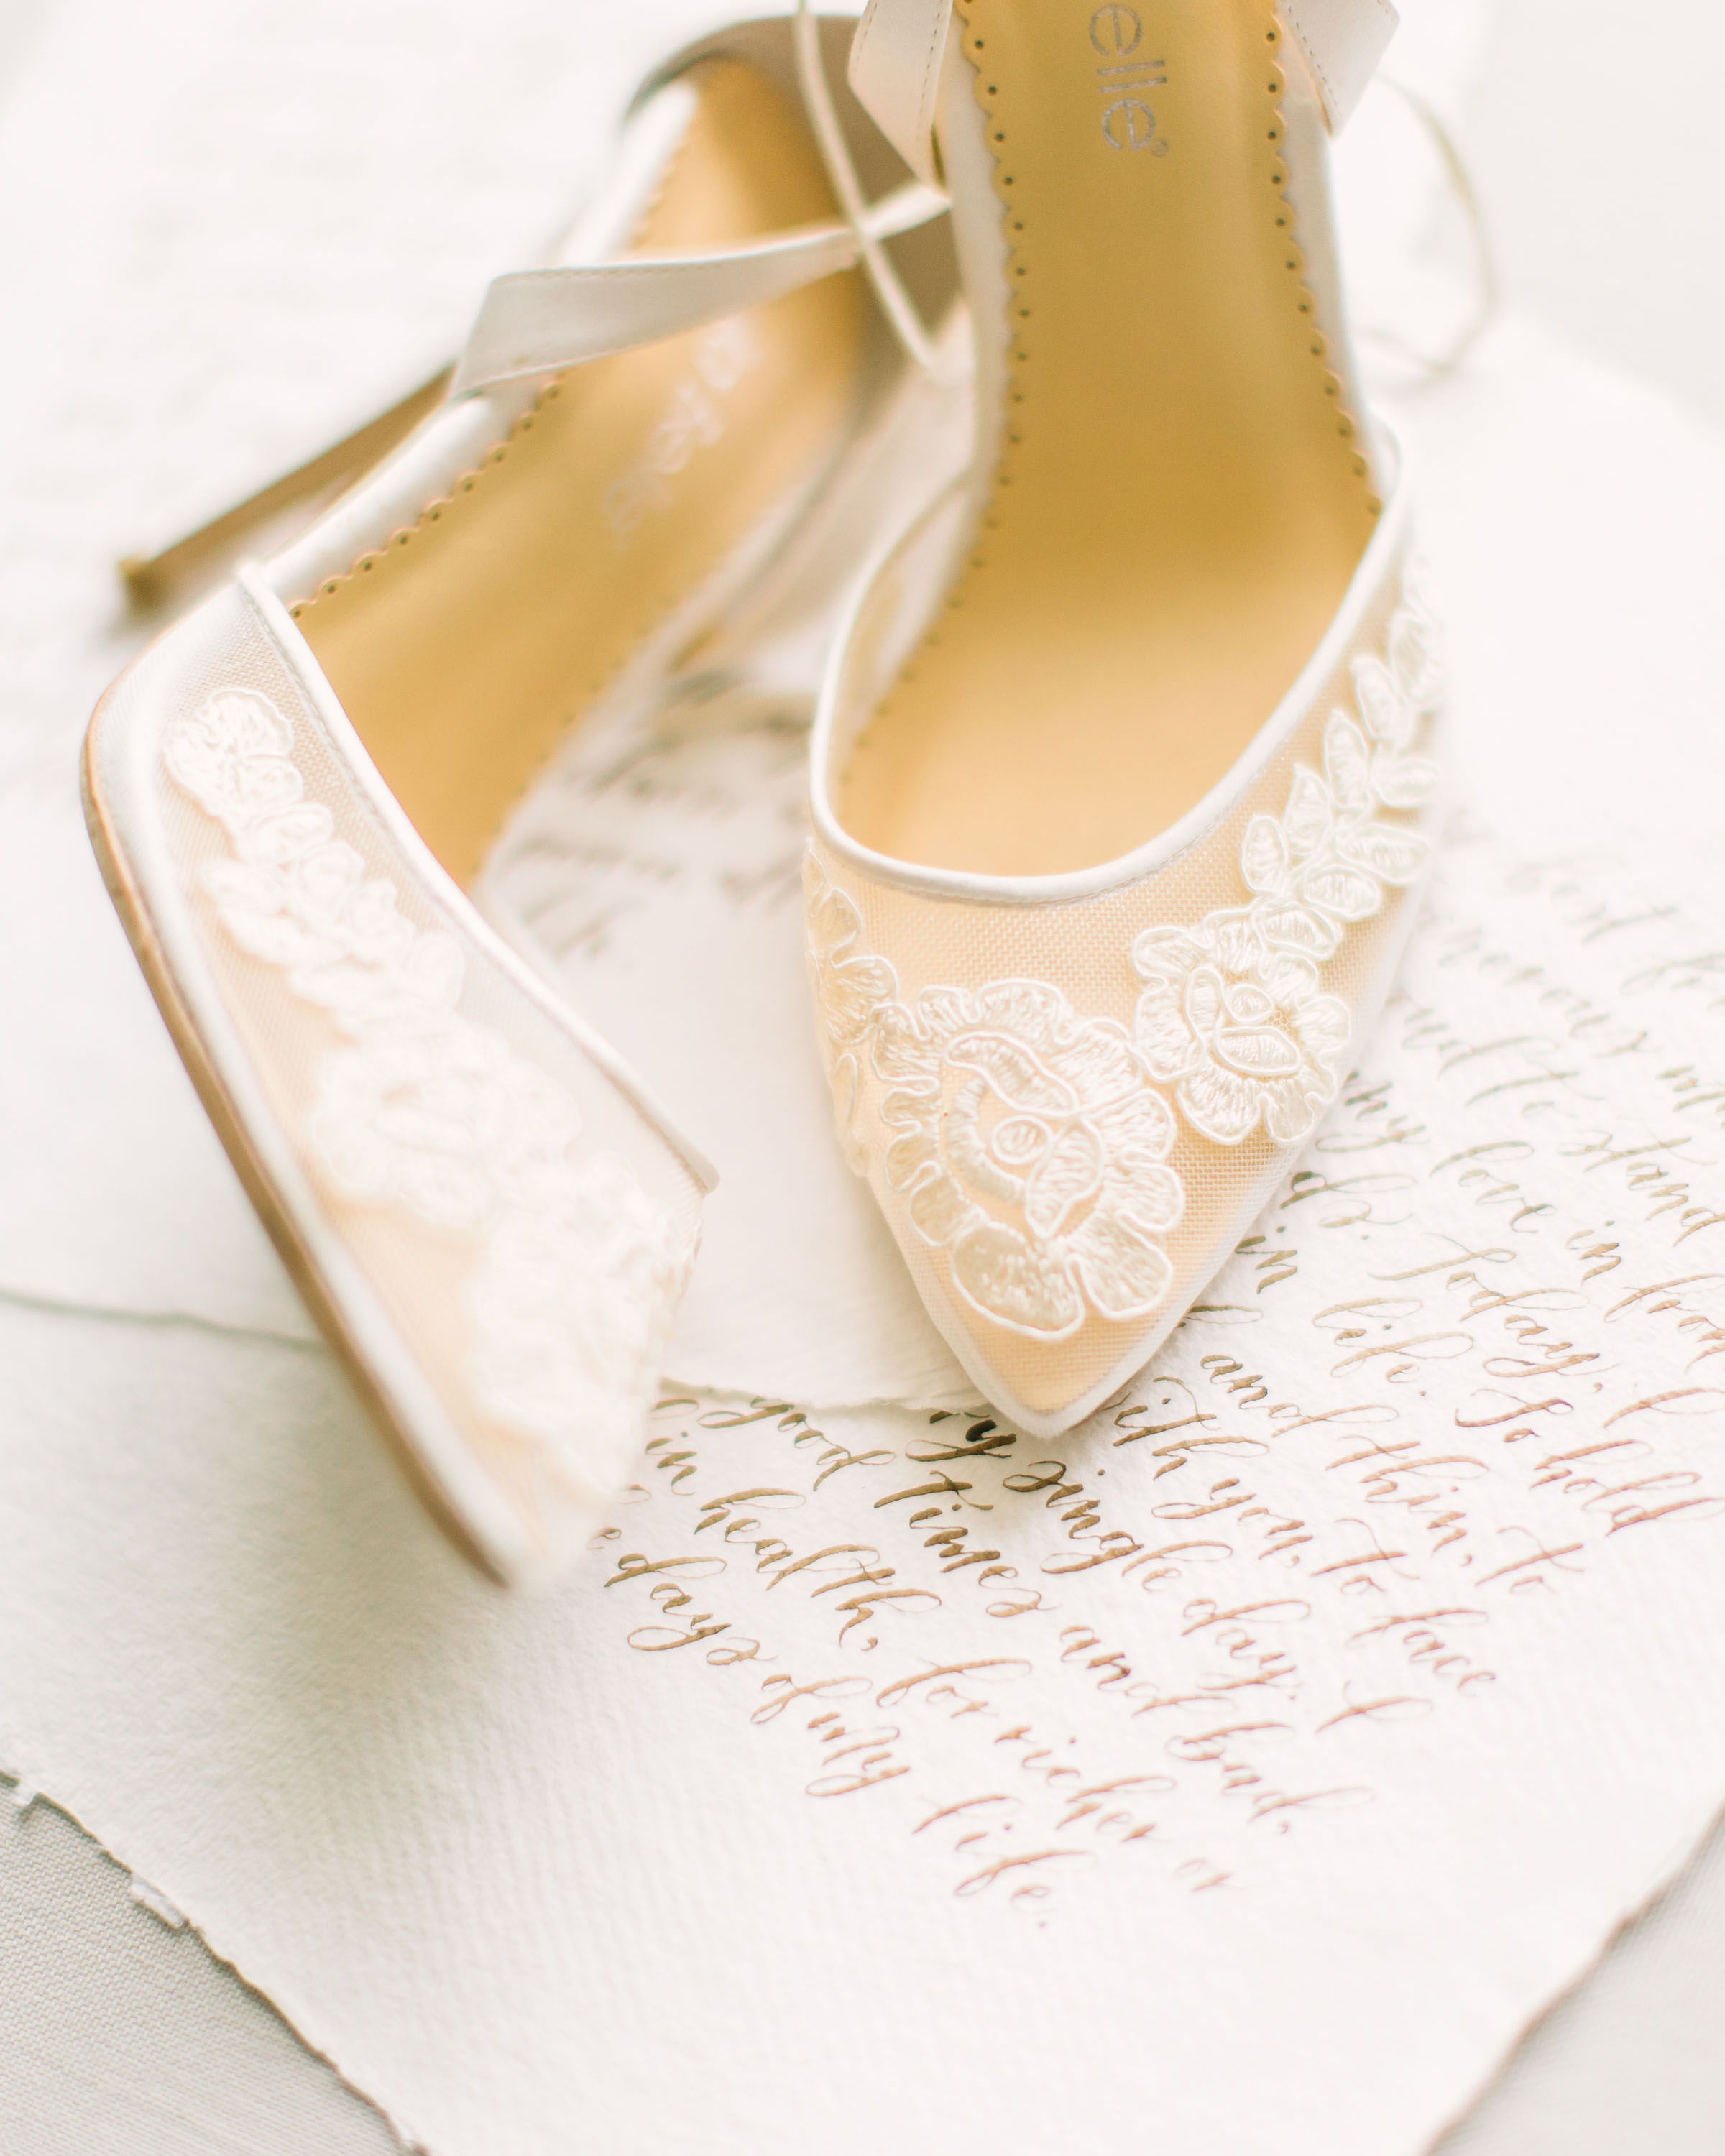 Fine Art Wedding Vow Calligraphy by Caitlin O'Bryant Design. Photo by Kate Elizabeth Photography.